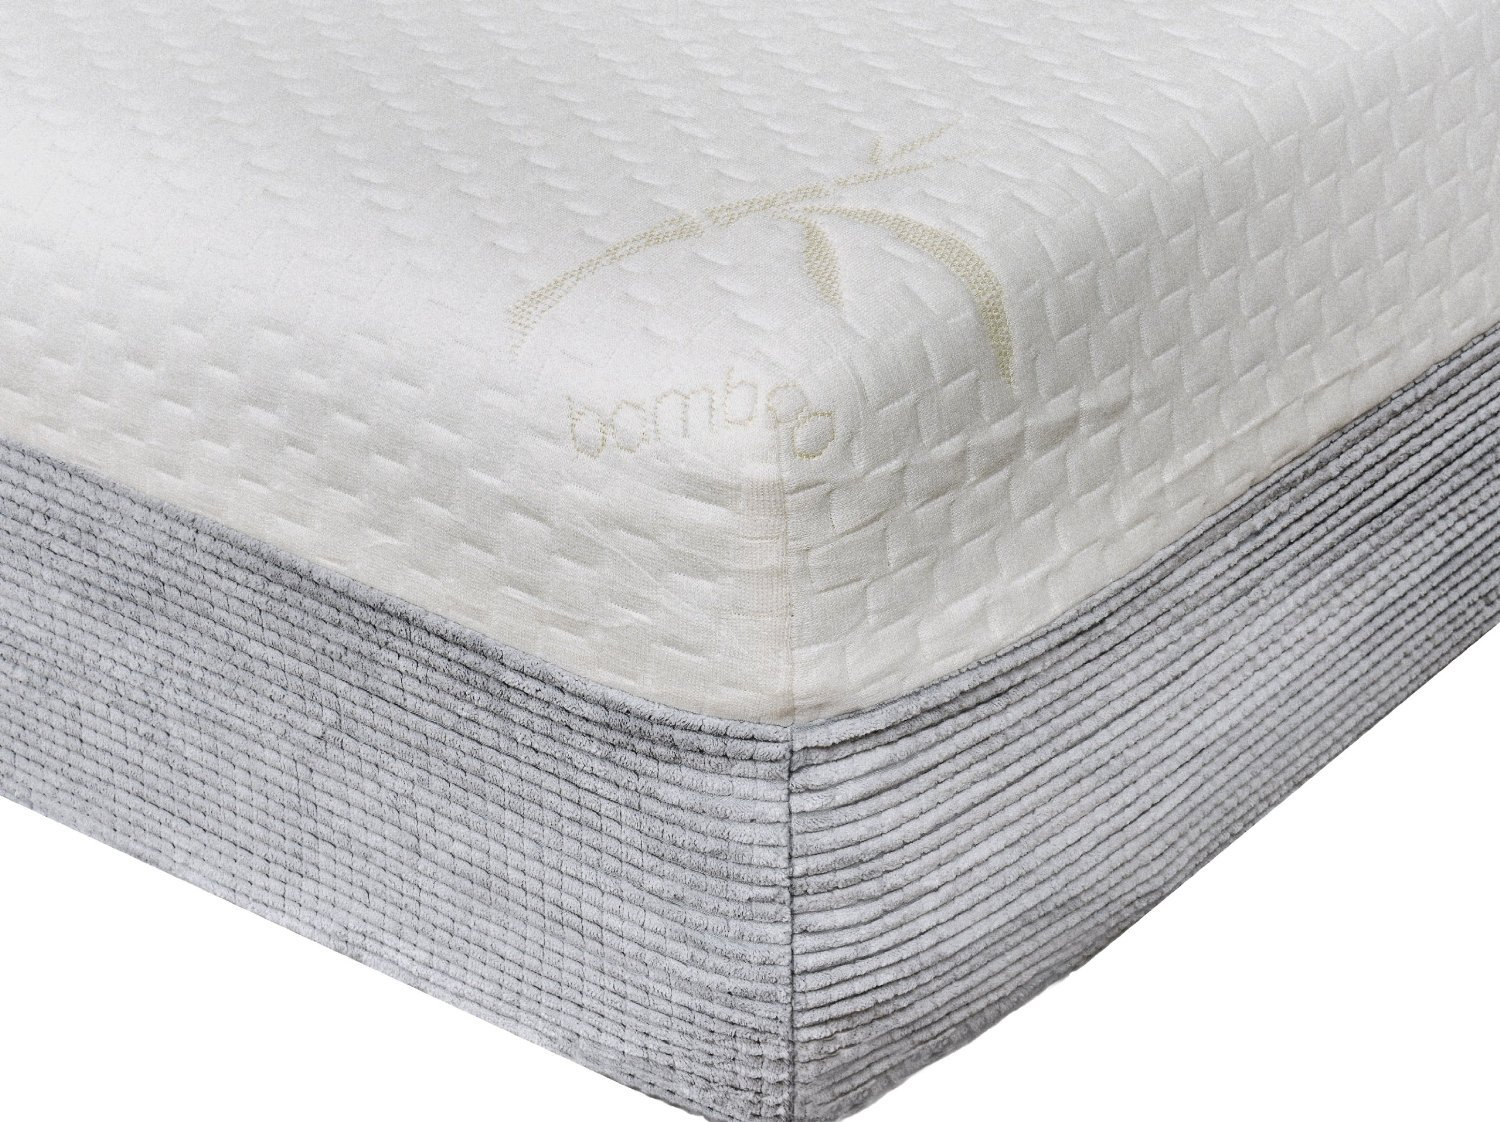 red nomad 10 luxury memory foam mattress certipur us certified